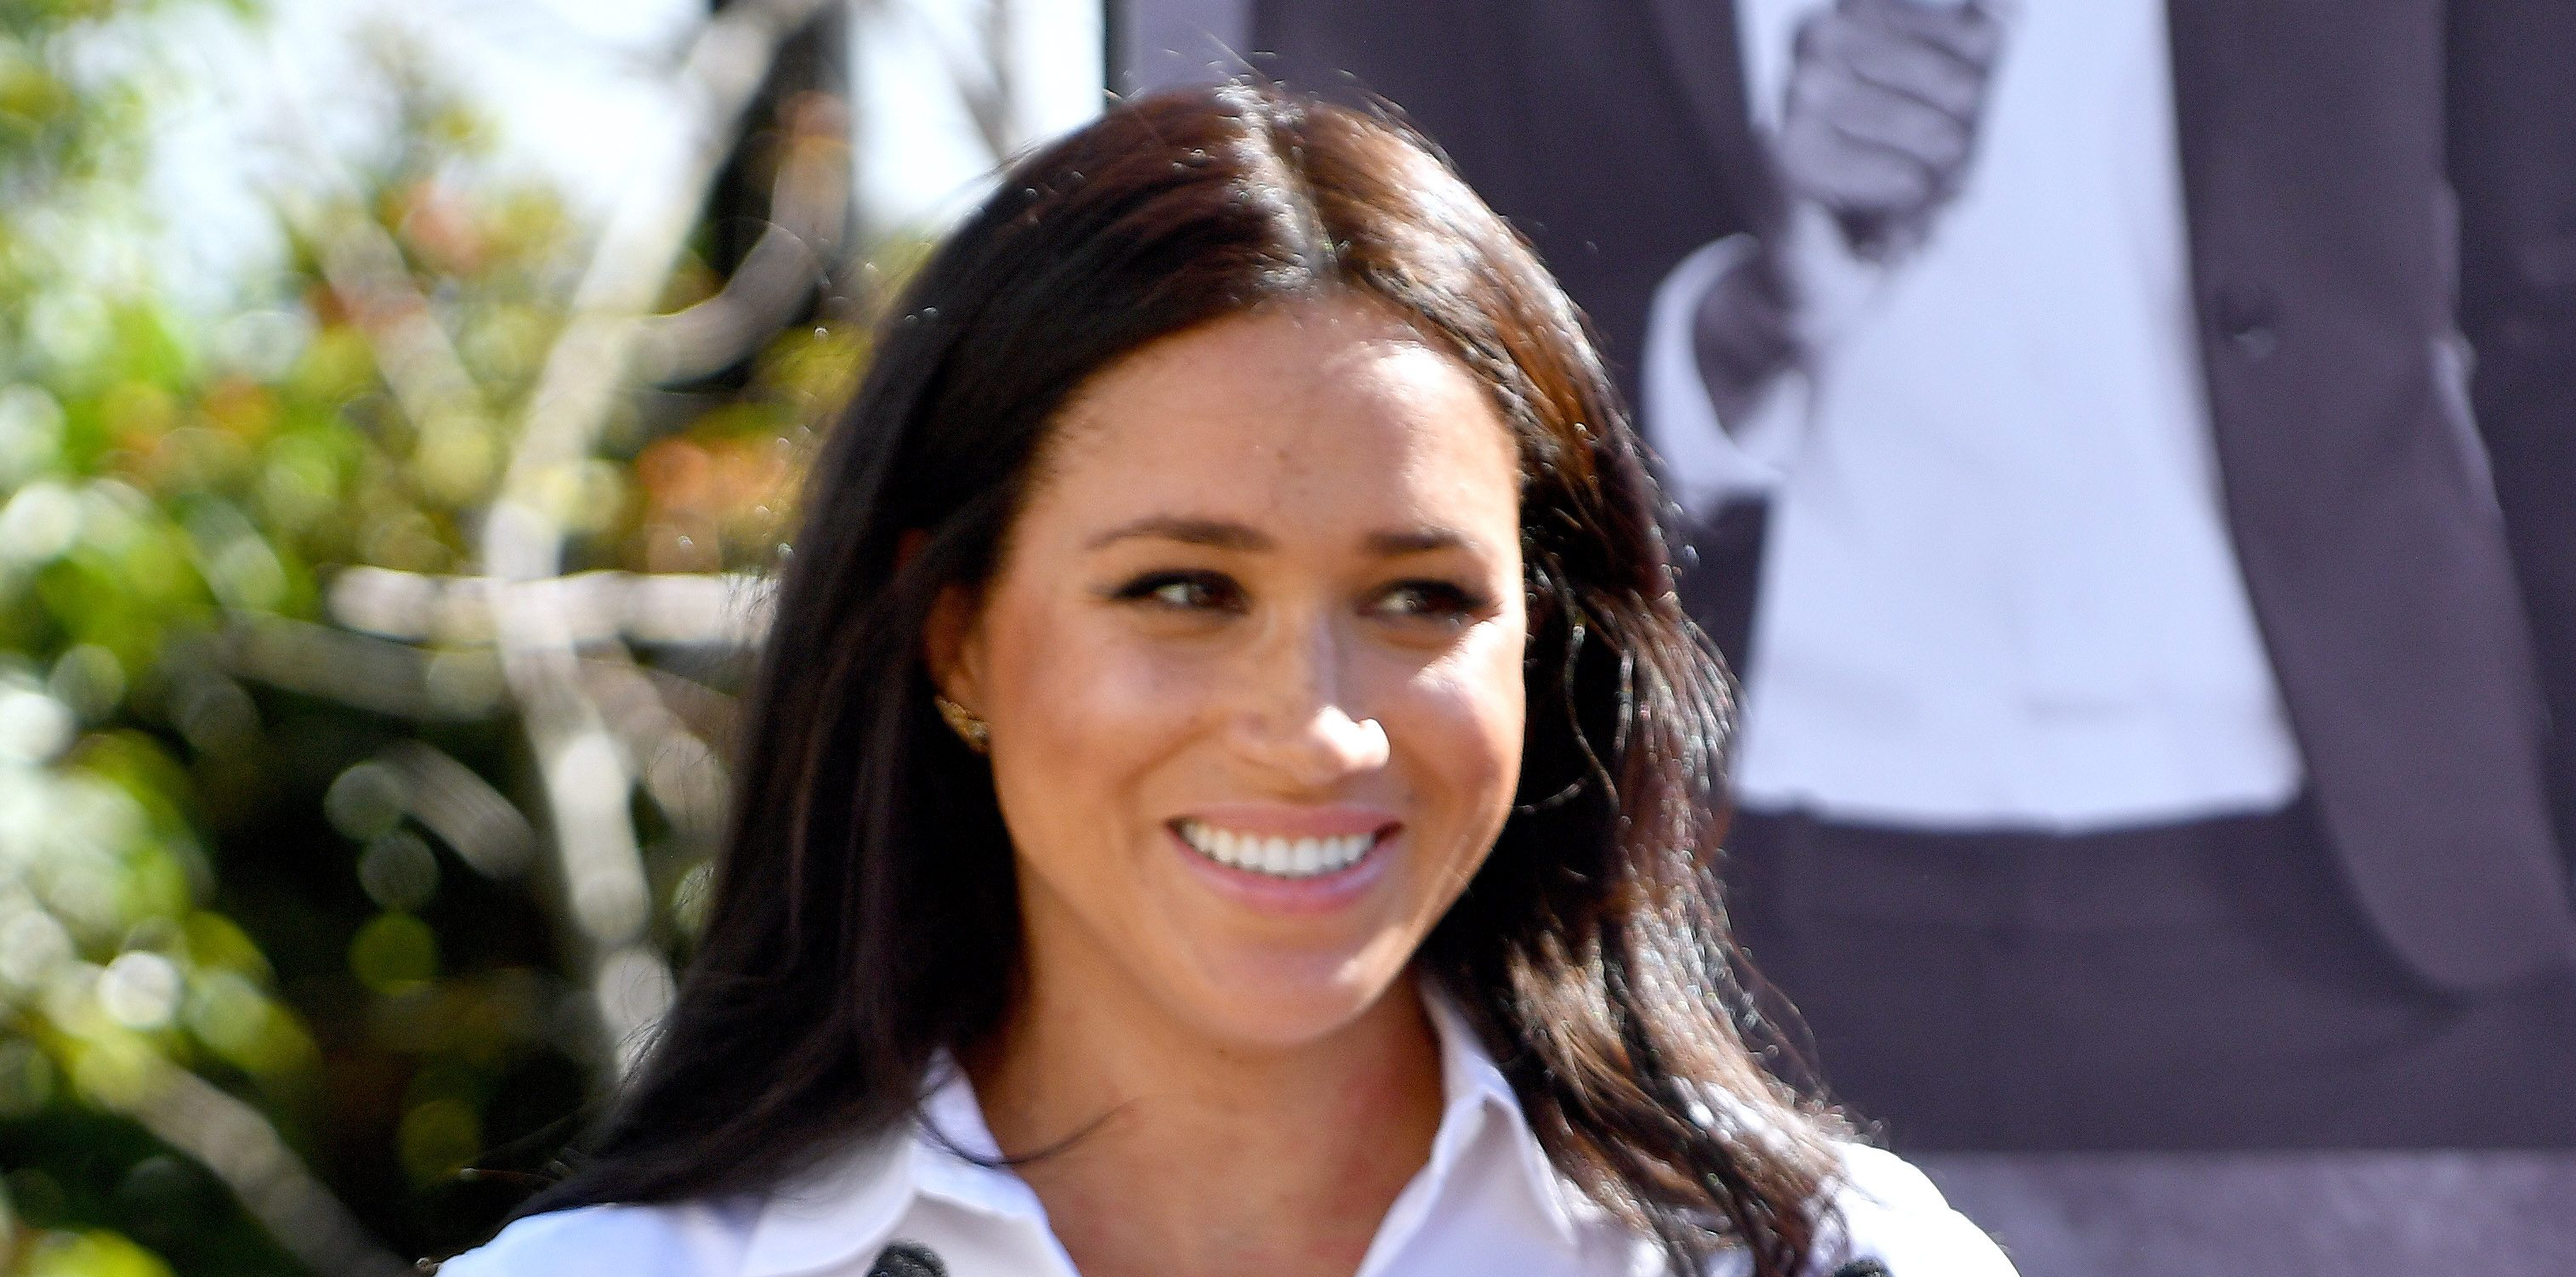 Meghan says she doesn't want 'people to love her' after revealing struggles in the spotlight